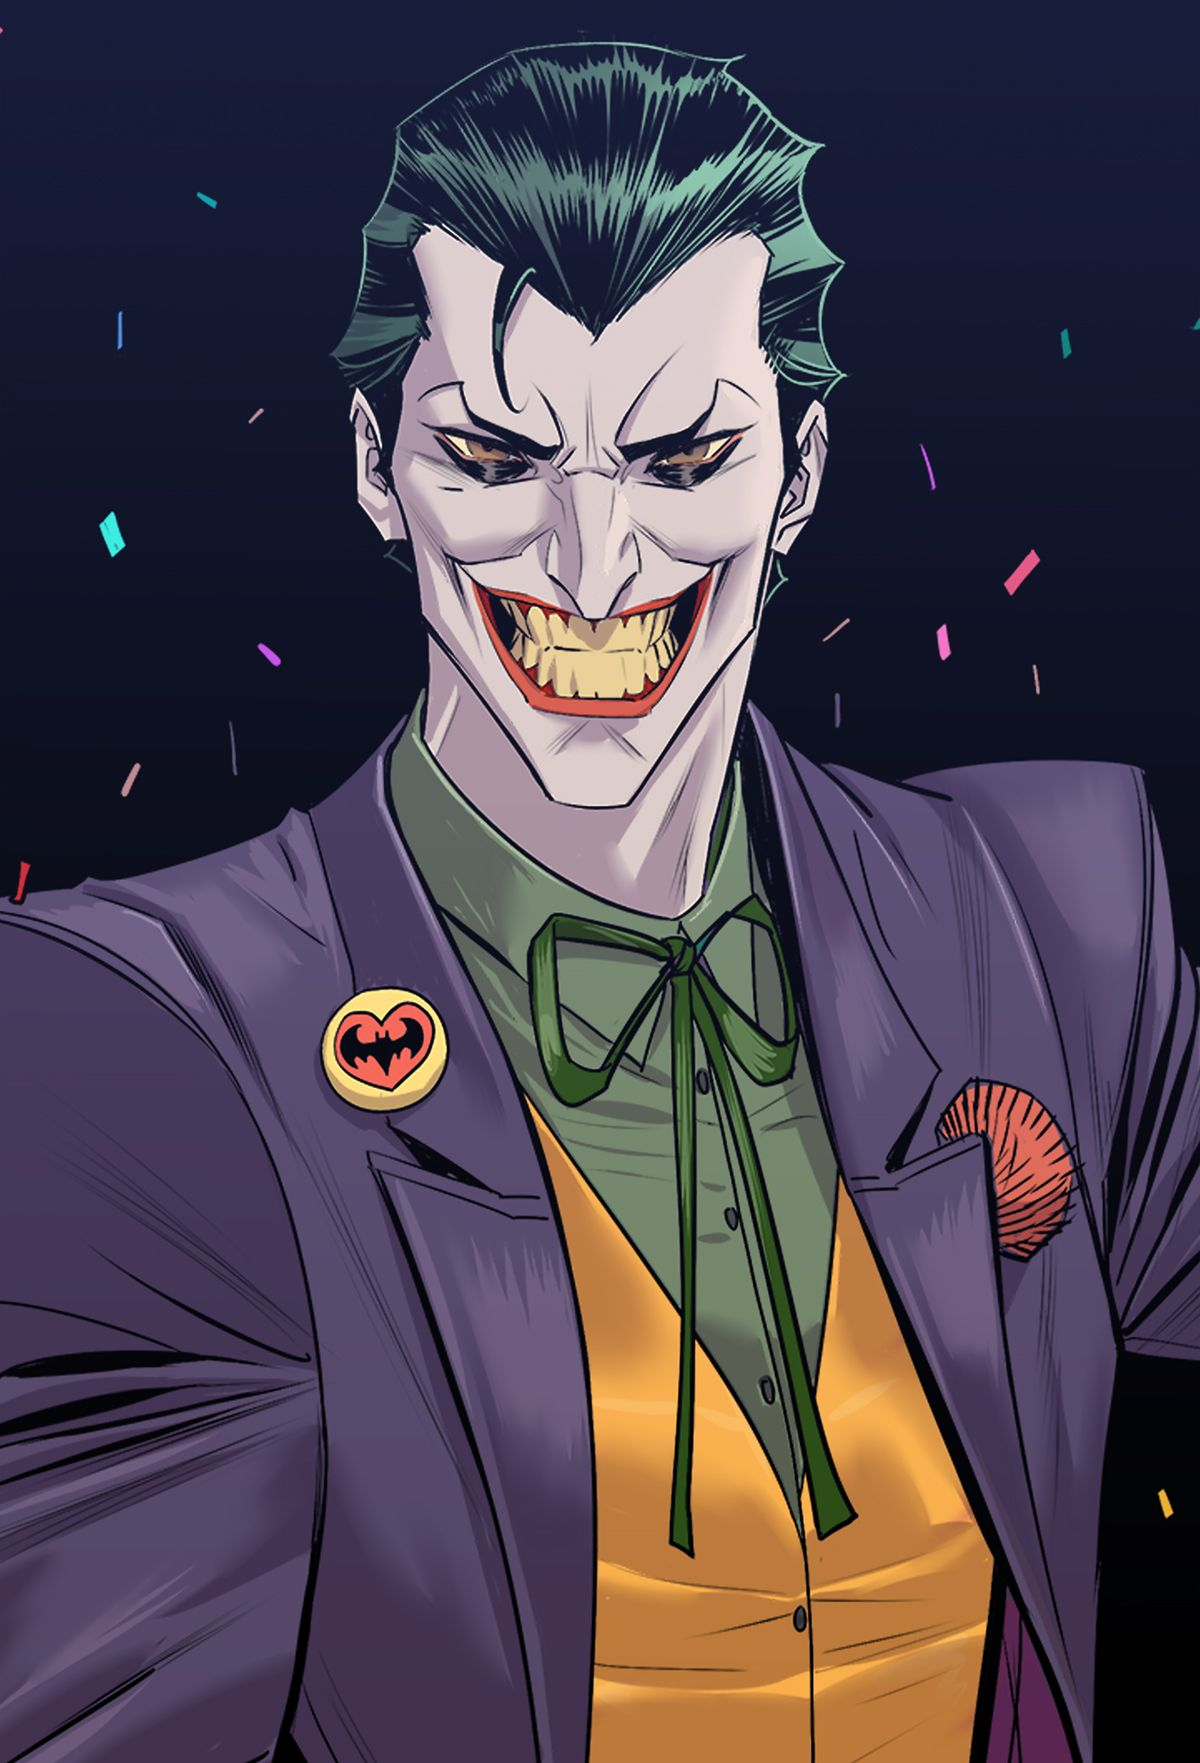 Classic joker on behance anime cartoons characters joker joker cartoon joker art - Superman et batman dessin anime ...